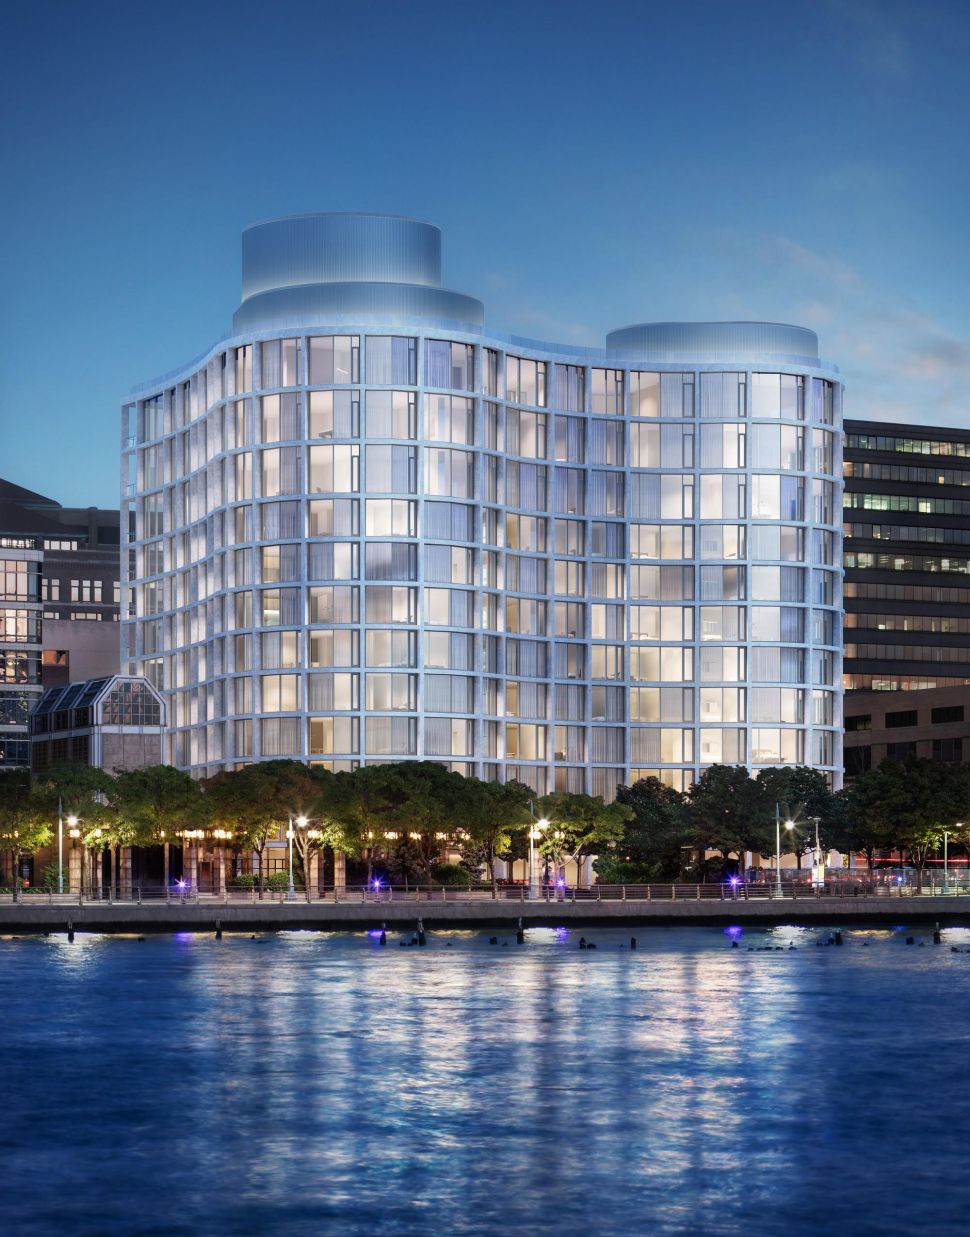 Ian Schrager's 160 Leroy Hits 40 Percent In Contract Mark